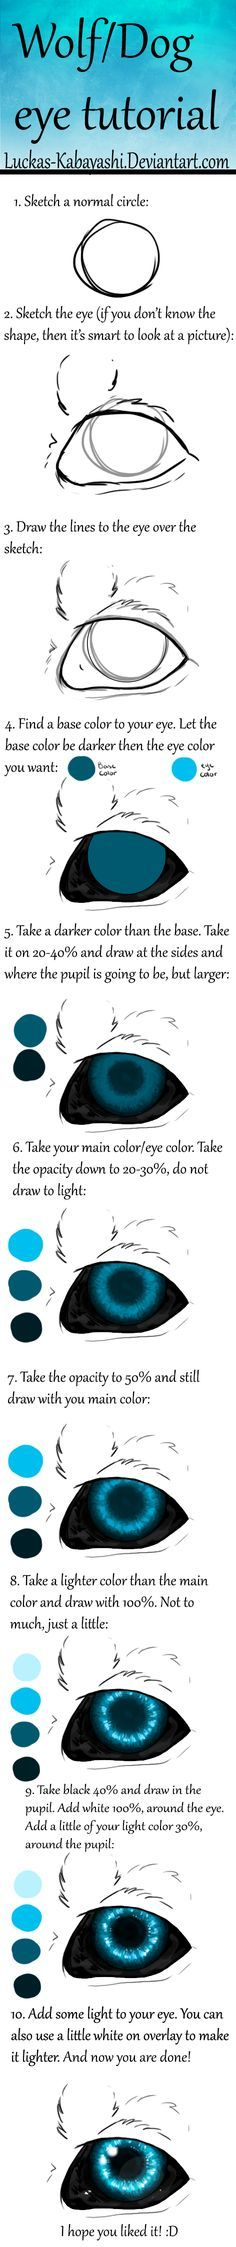 wolf_dog_eye_tutorial_by_luckas_kabayashi-d8r5xrv.png 472 × 4 495 bildepunkter